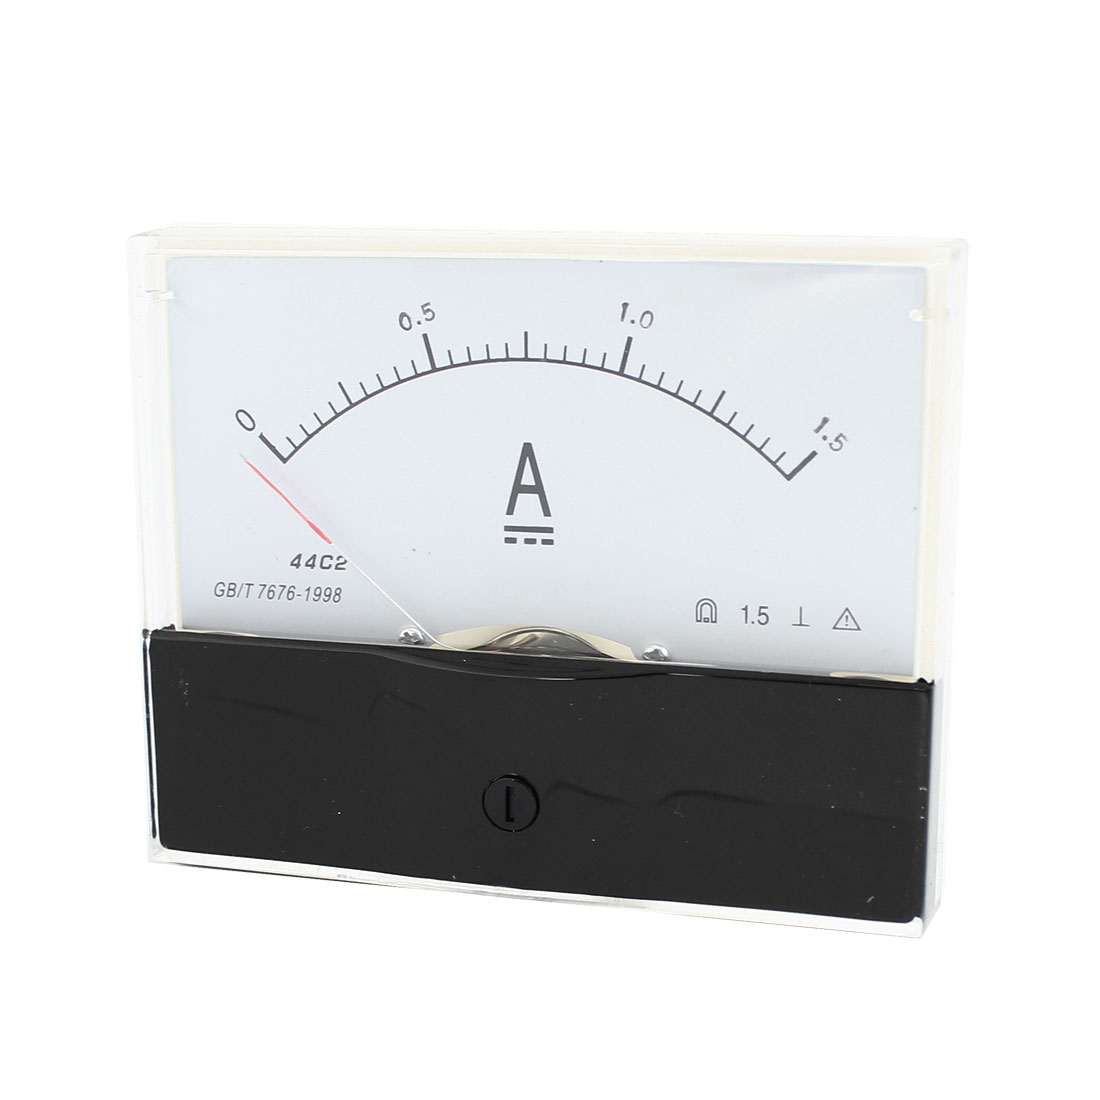 DC 0-1.5A Range Analogue Ampere Panel Meter Measurement Tool 44C2